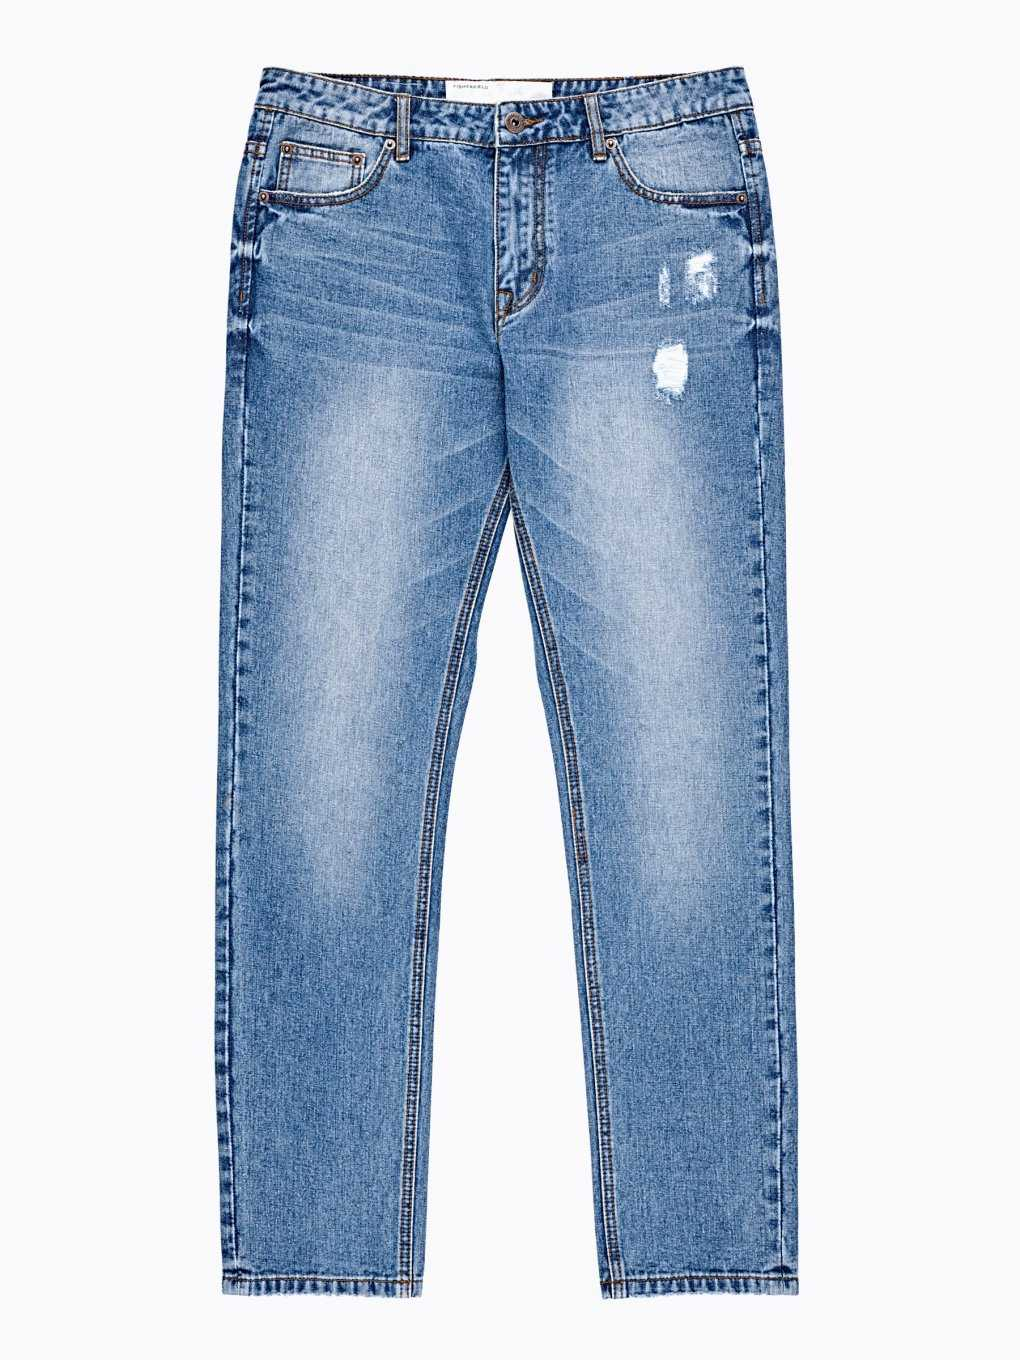 TAPERED FIT JEANS IN LIGHT BLUE WASH